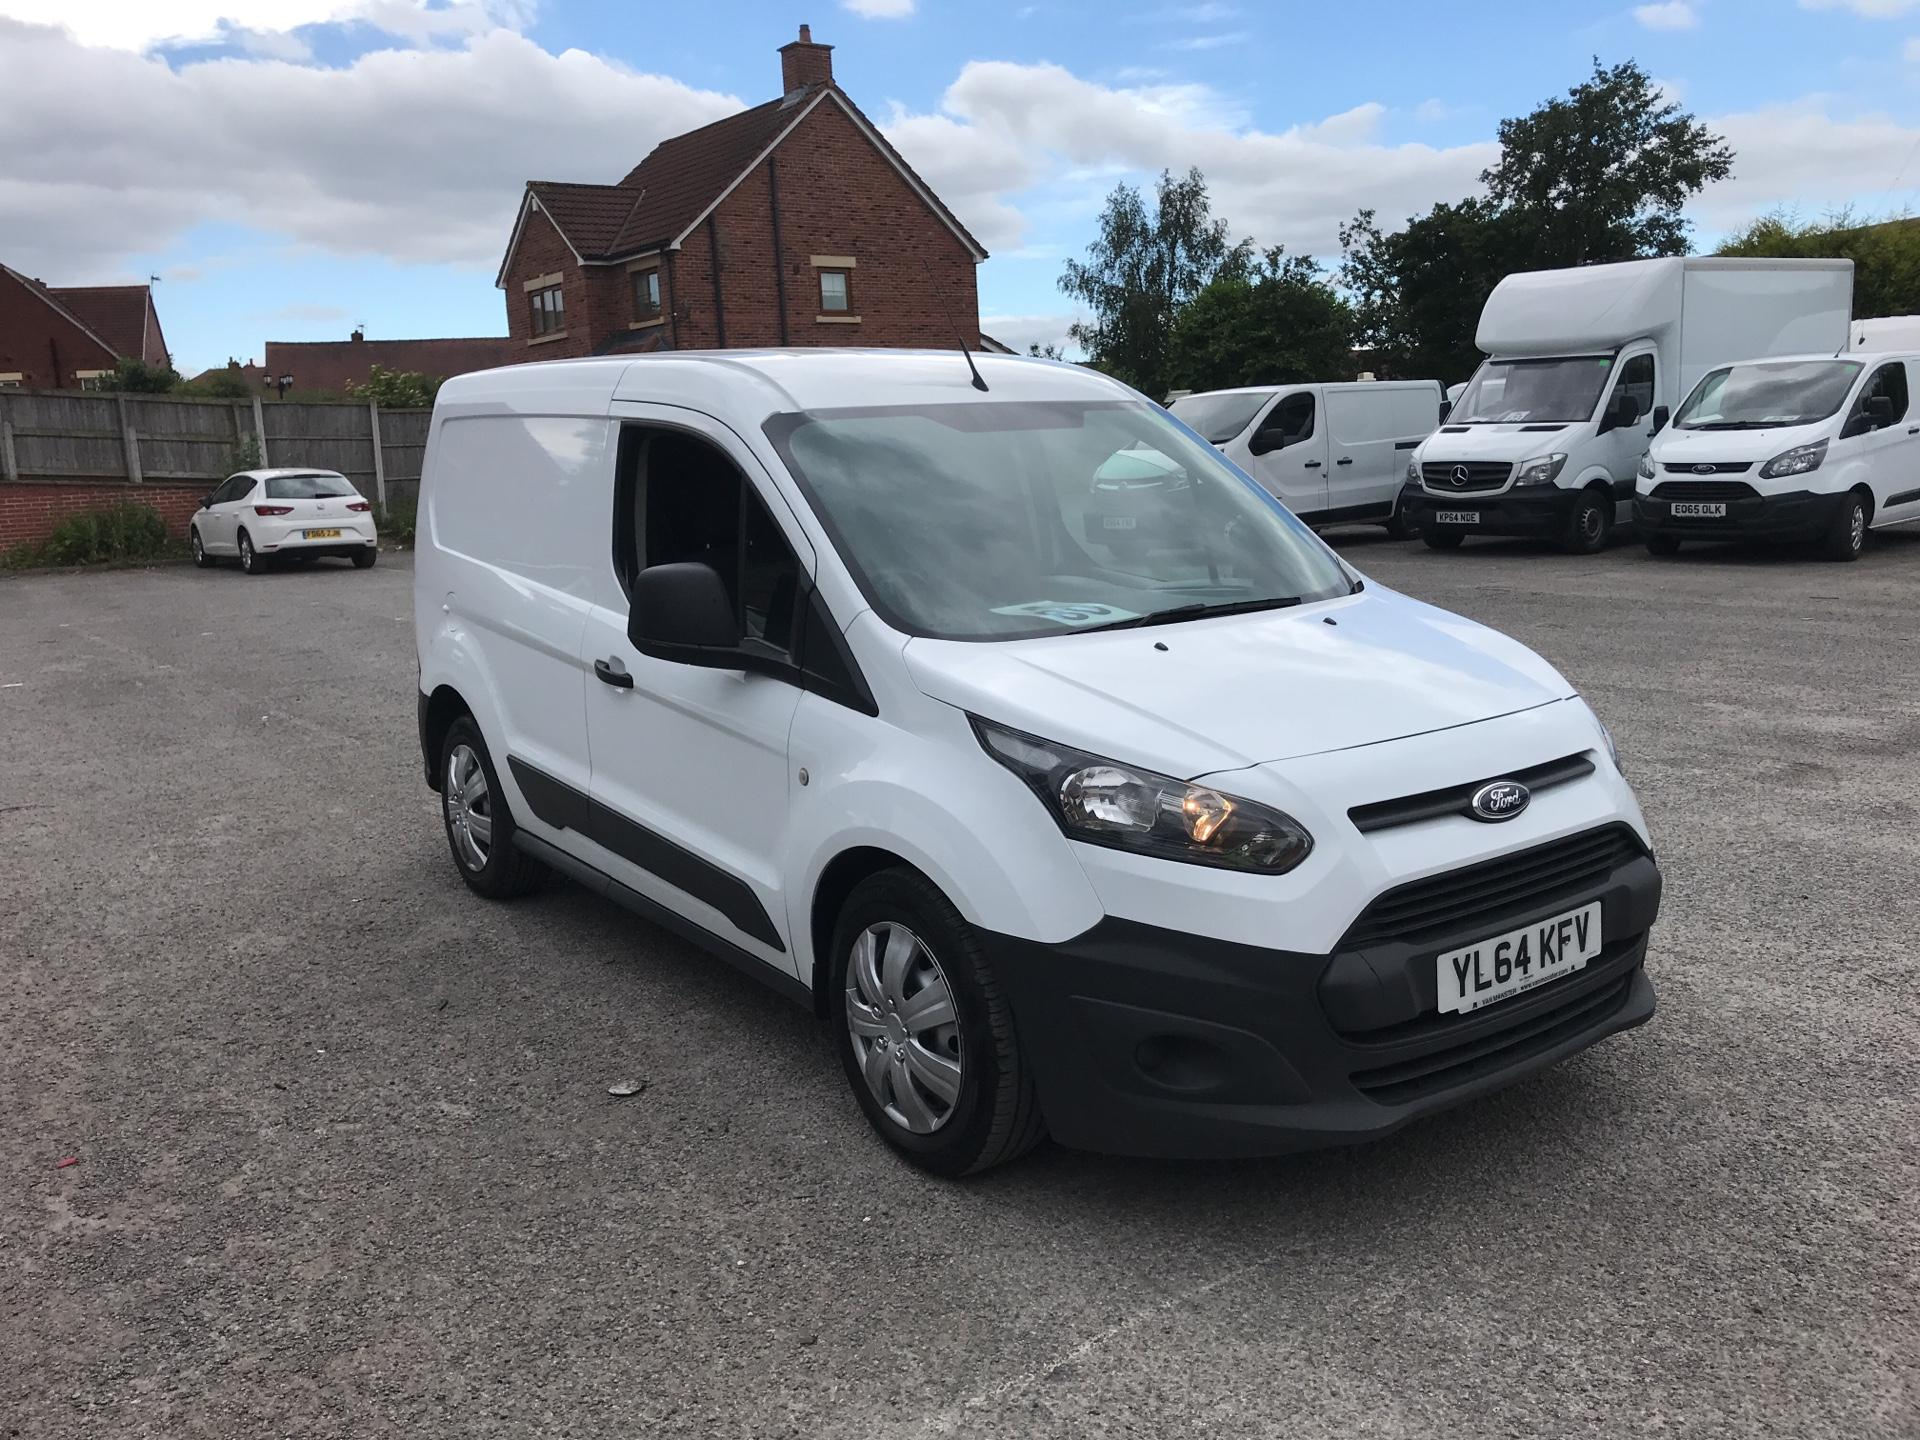 2015 Ford Transit Connect 1.6 Tdci 95Ps Van EURO 5 (YL64KFV)